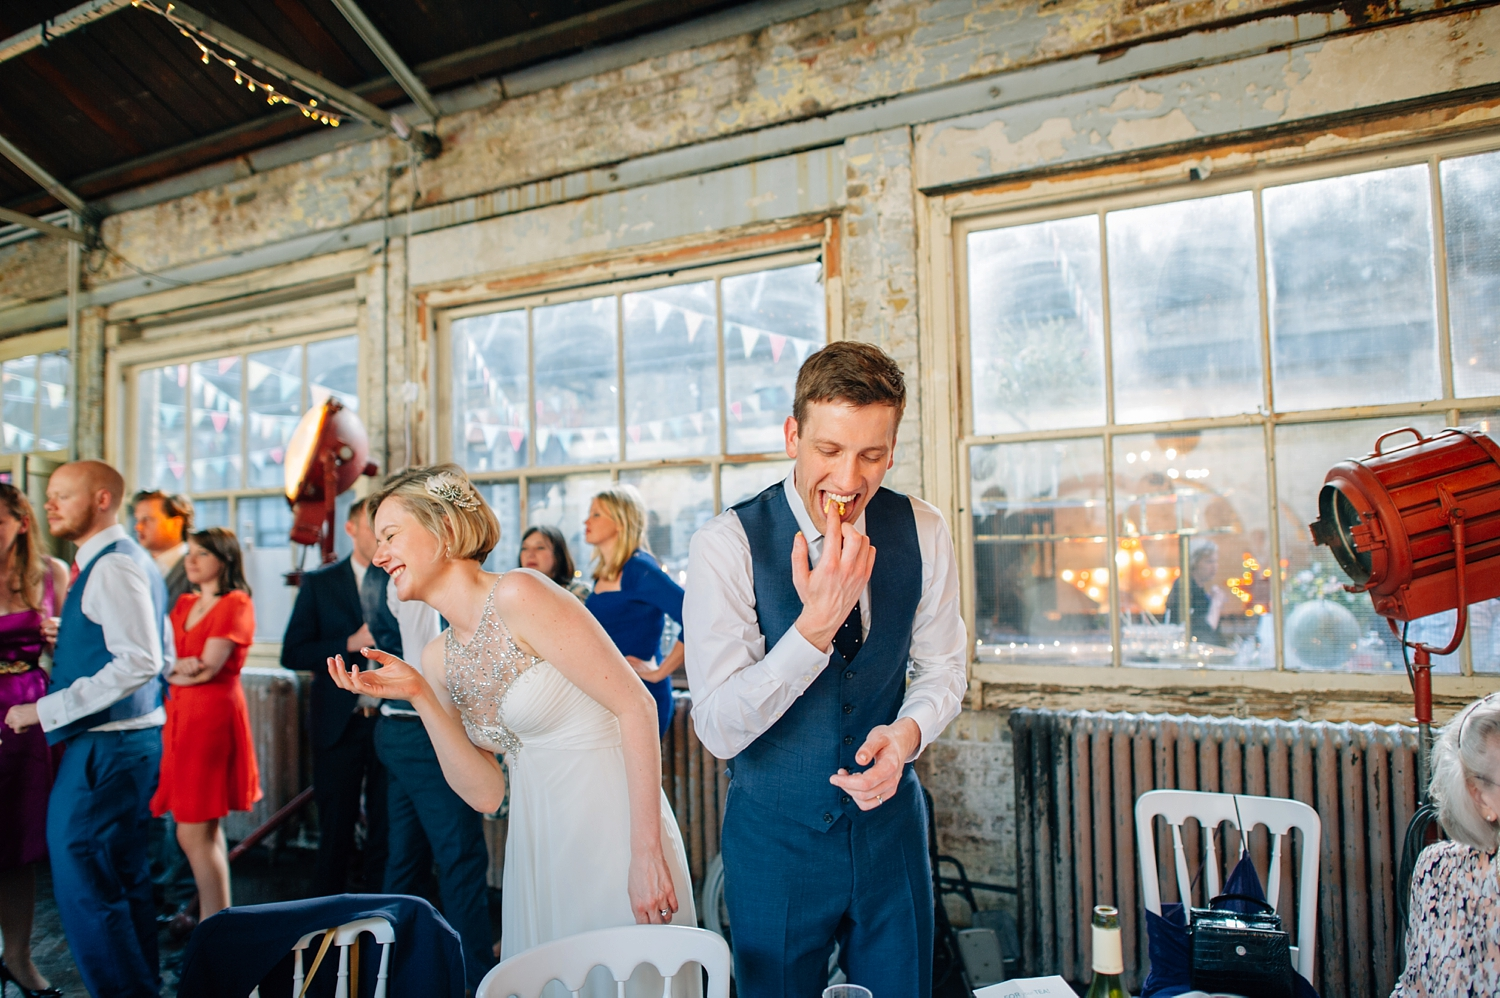 0193-lisa-devine-alternative-wedding-photography-london-hackney-dalston-london-photography-townhall-hotel.JPG